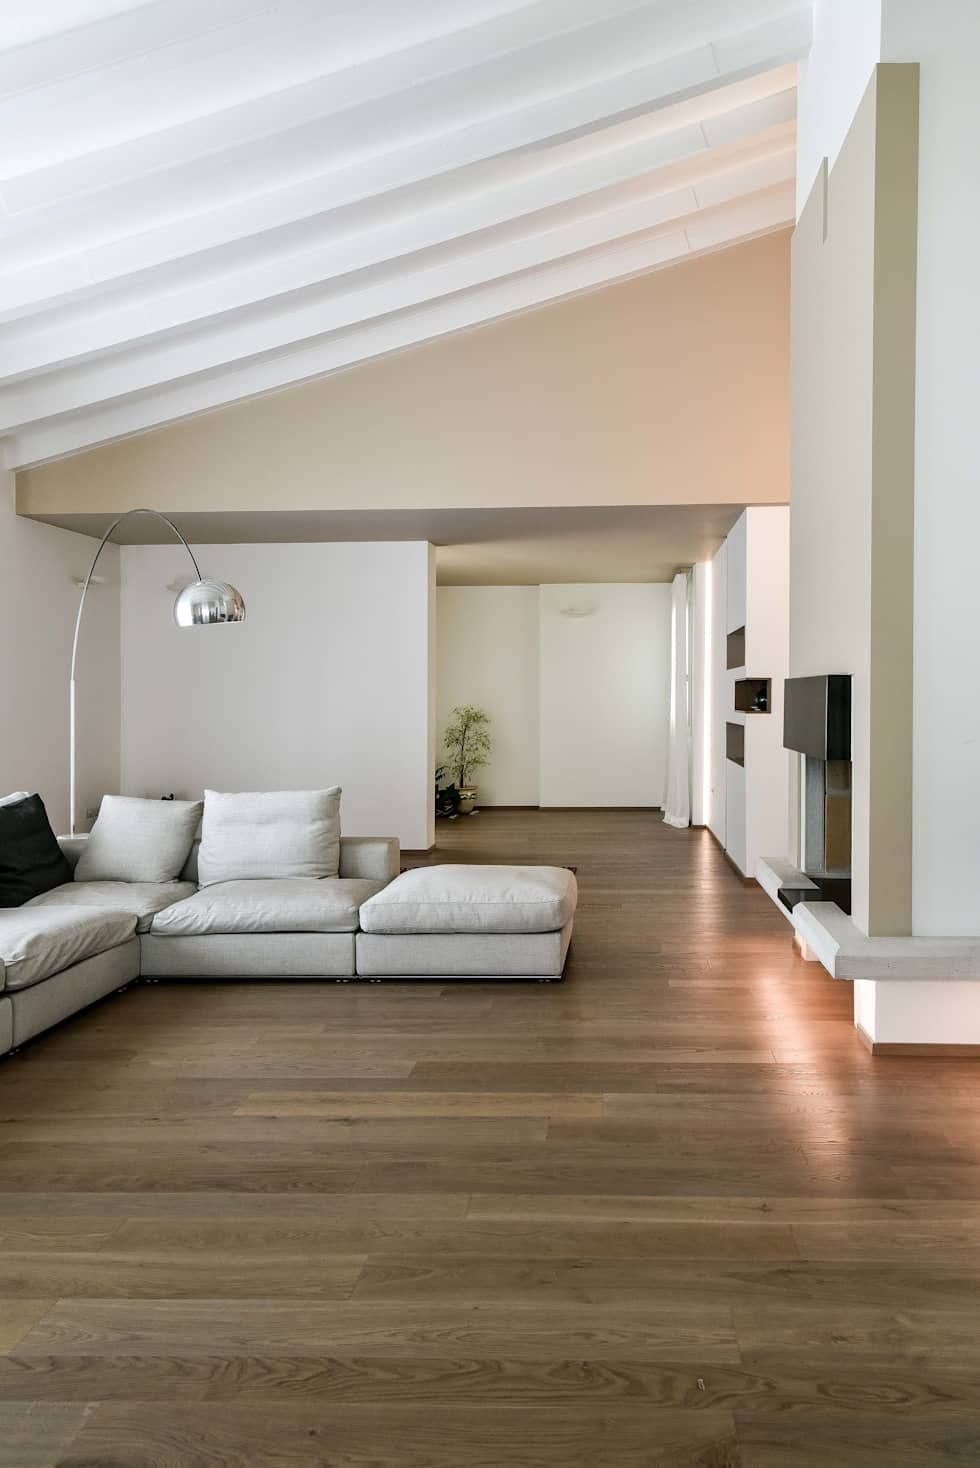 Idee Arredamento Casa & Interior Design | Pinterest | Living rooms ...